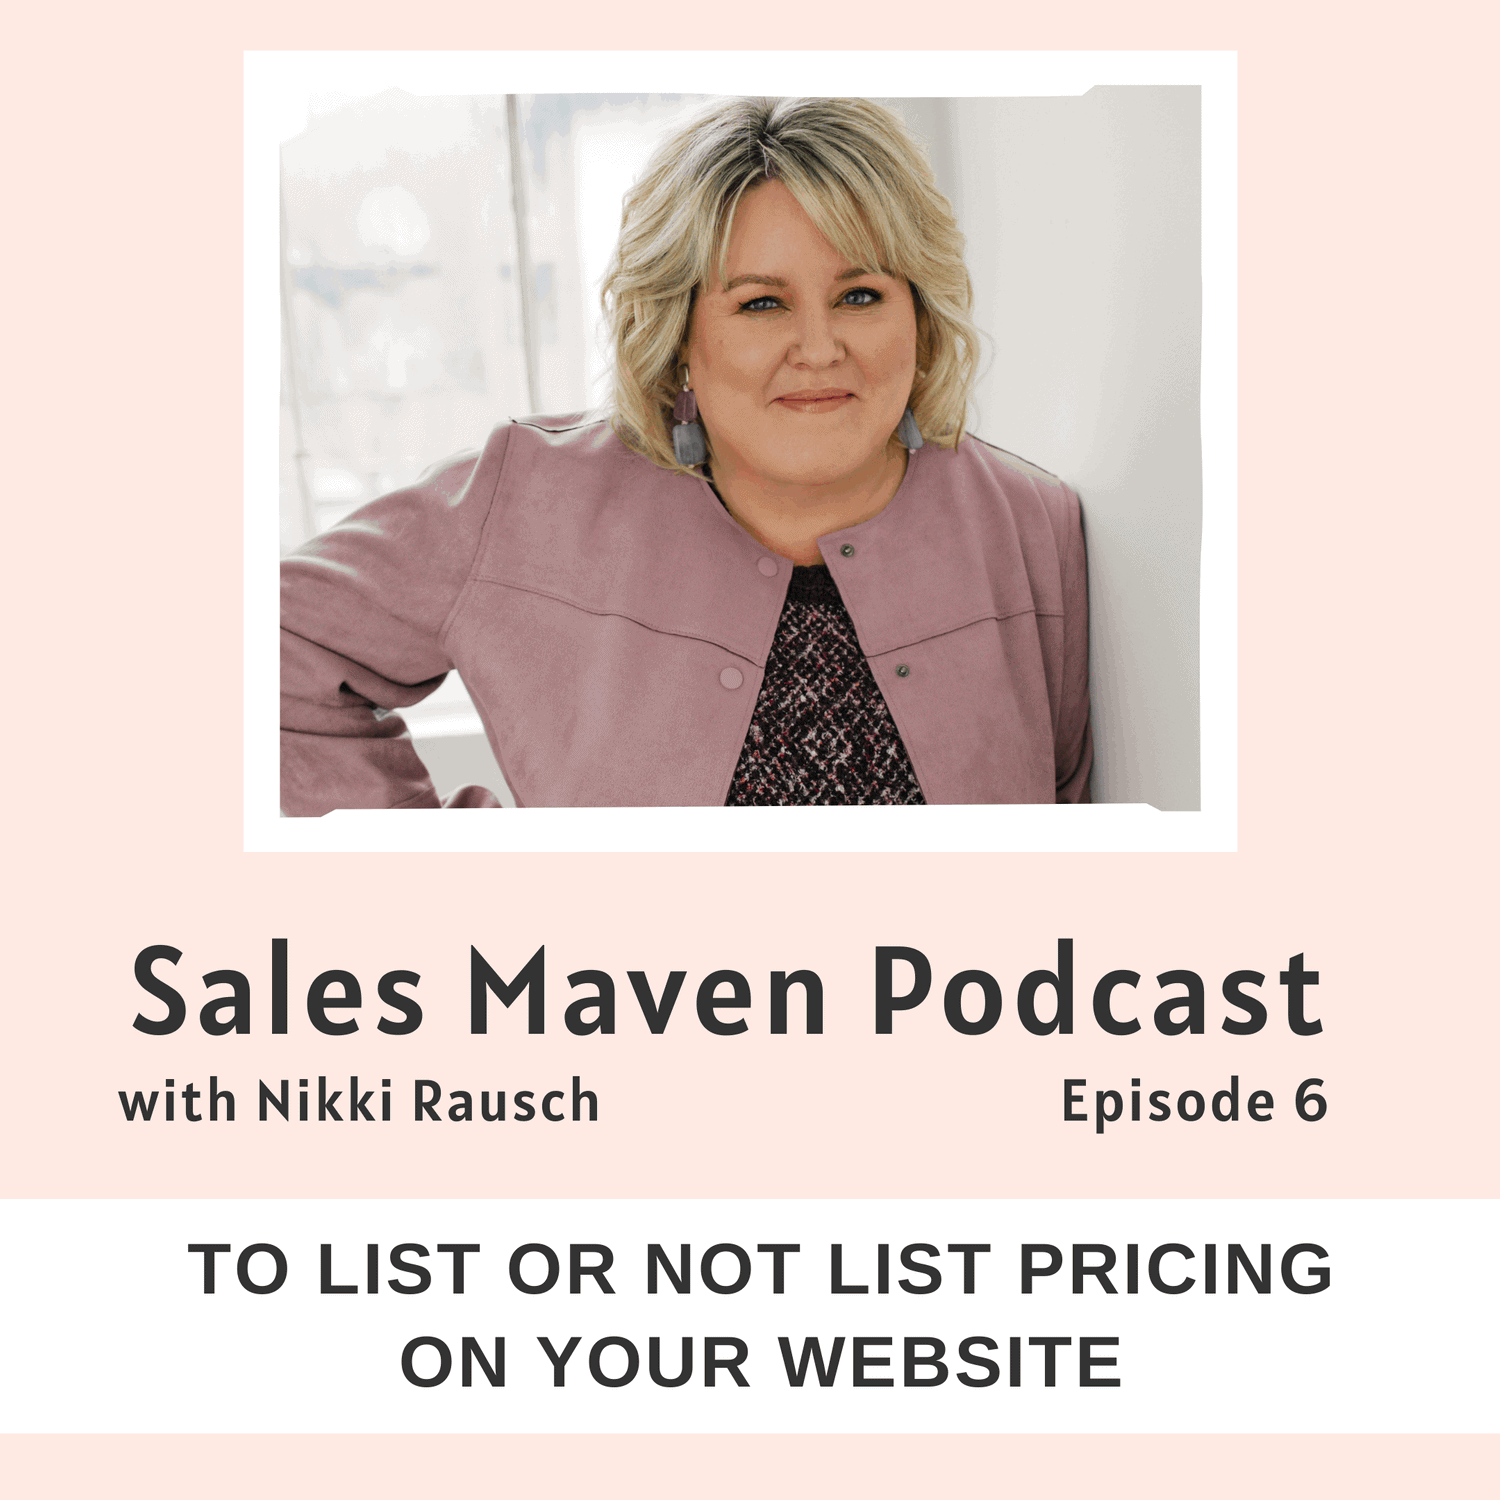 To list or not list pricing on your website